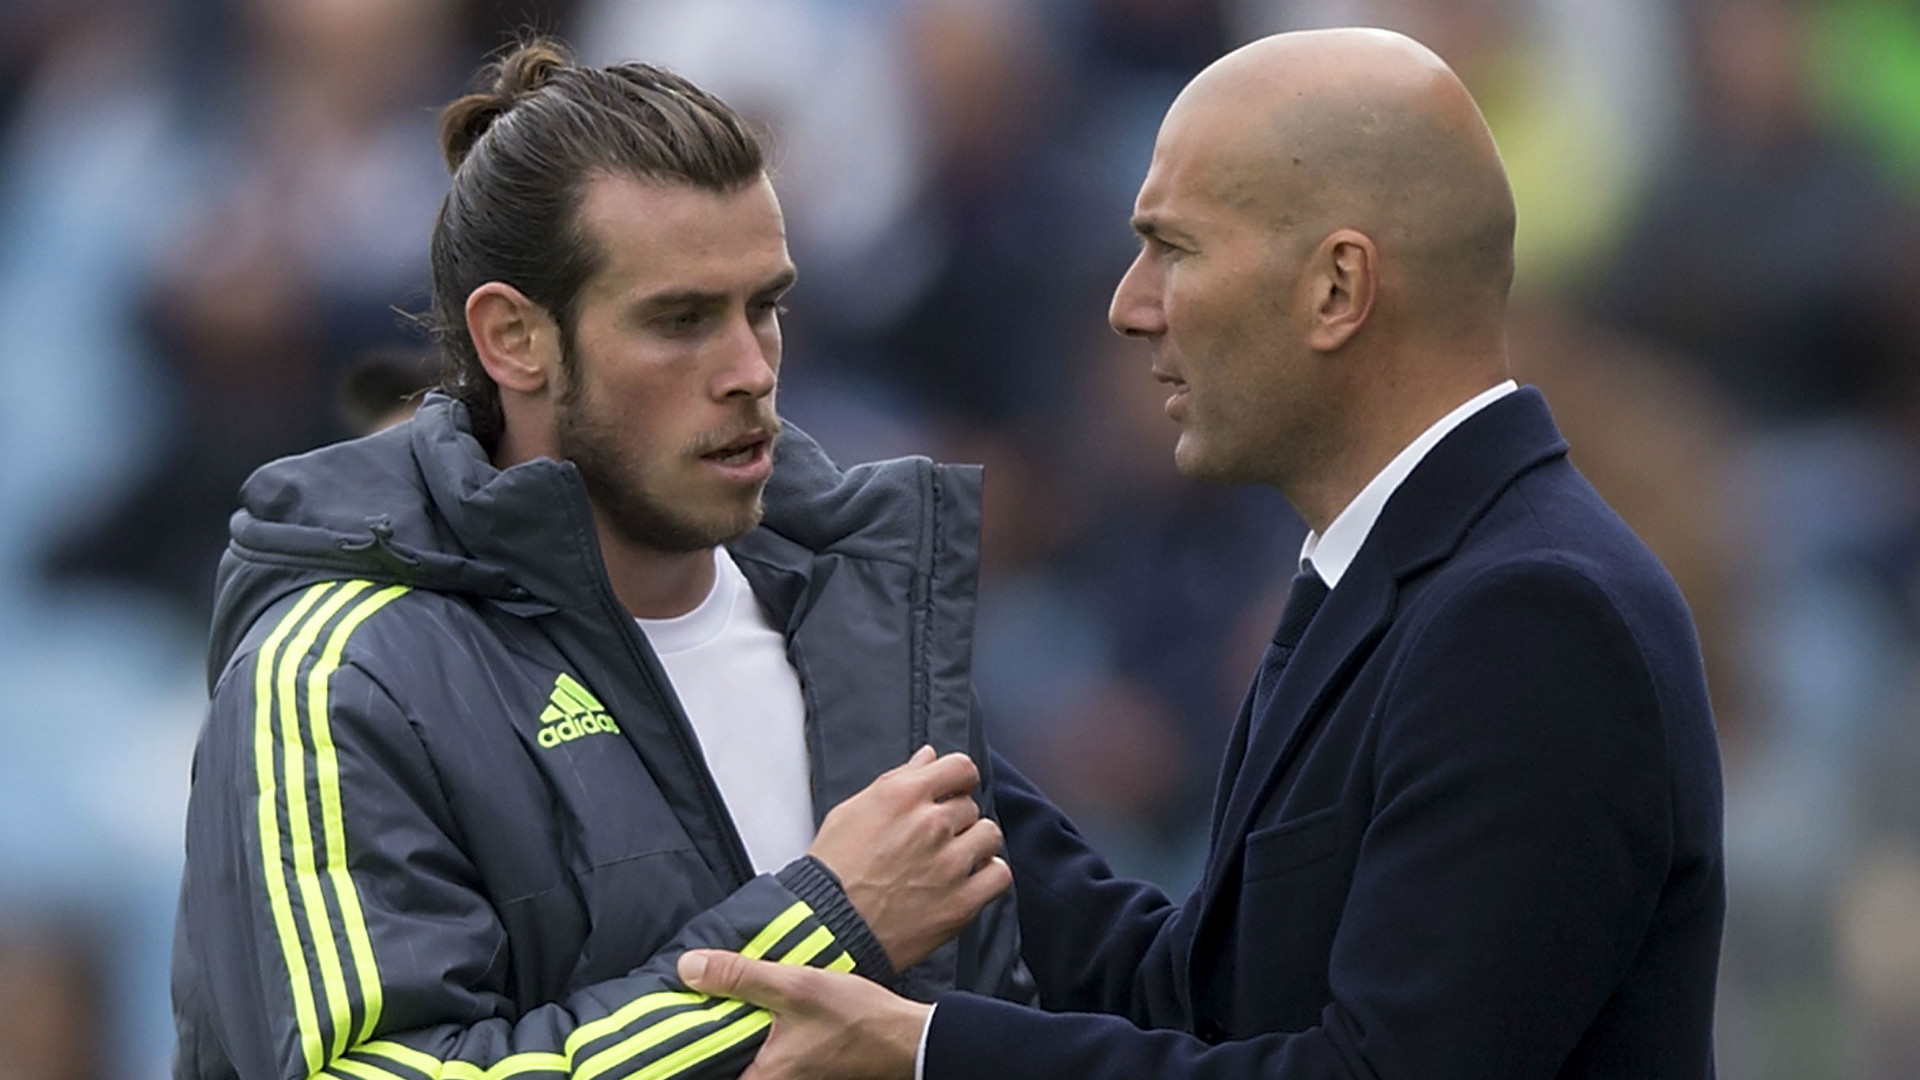 Gareth Bale's agent admit's the Welshman is 'not ecstatic' at Real Madrid